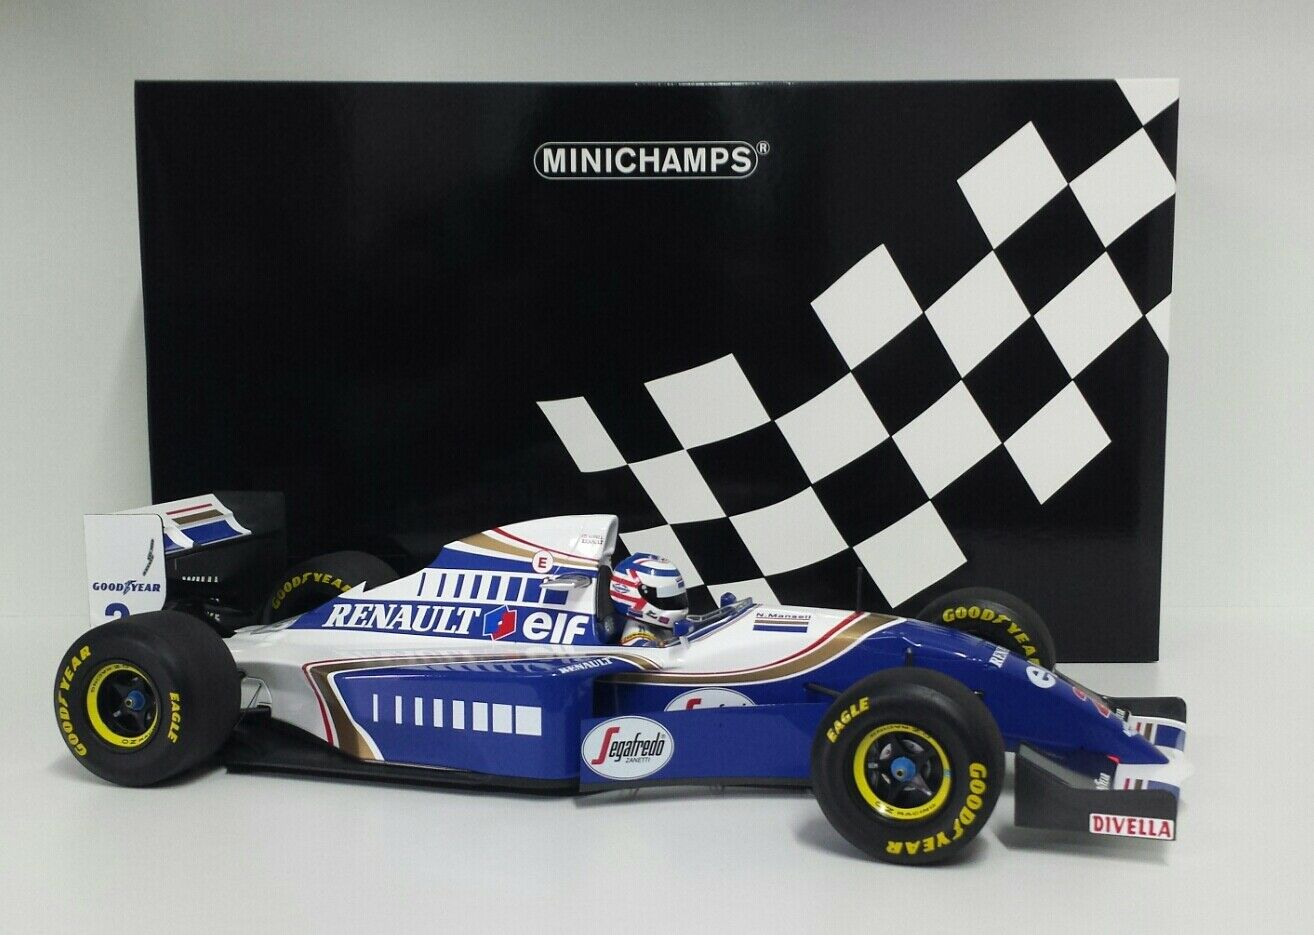 MINICHAMPS 1/12 MODELLINO AUTO F1 DIECAST WILLIAMS RENAULT FW16 MANSELL 1994 NEW